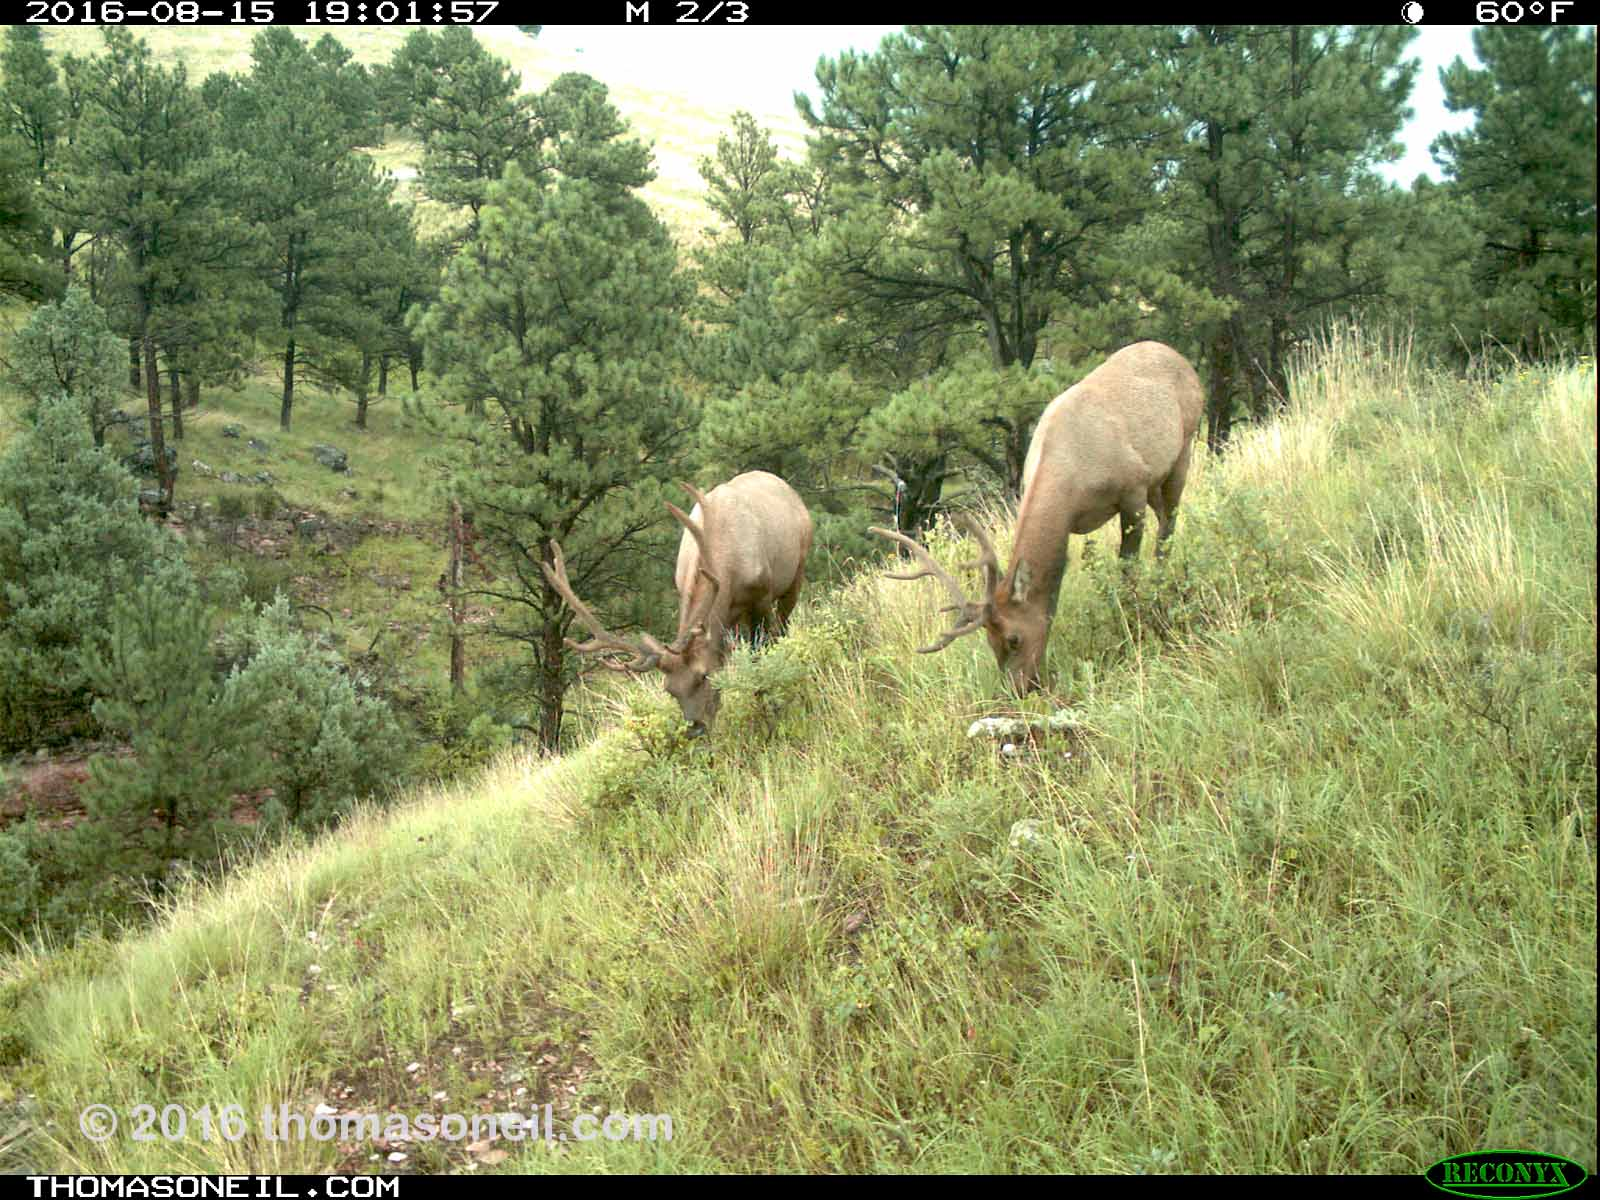 Elk on trailcam, Wind Cave National Park, Aug. 15, 2016.  Click for next photo.